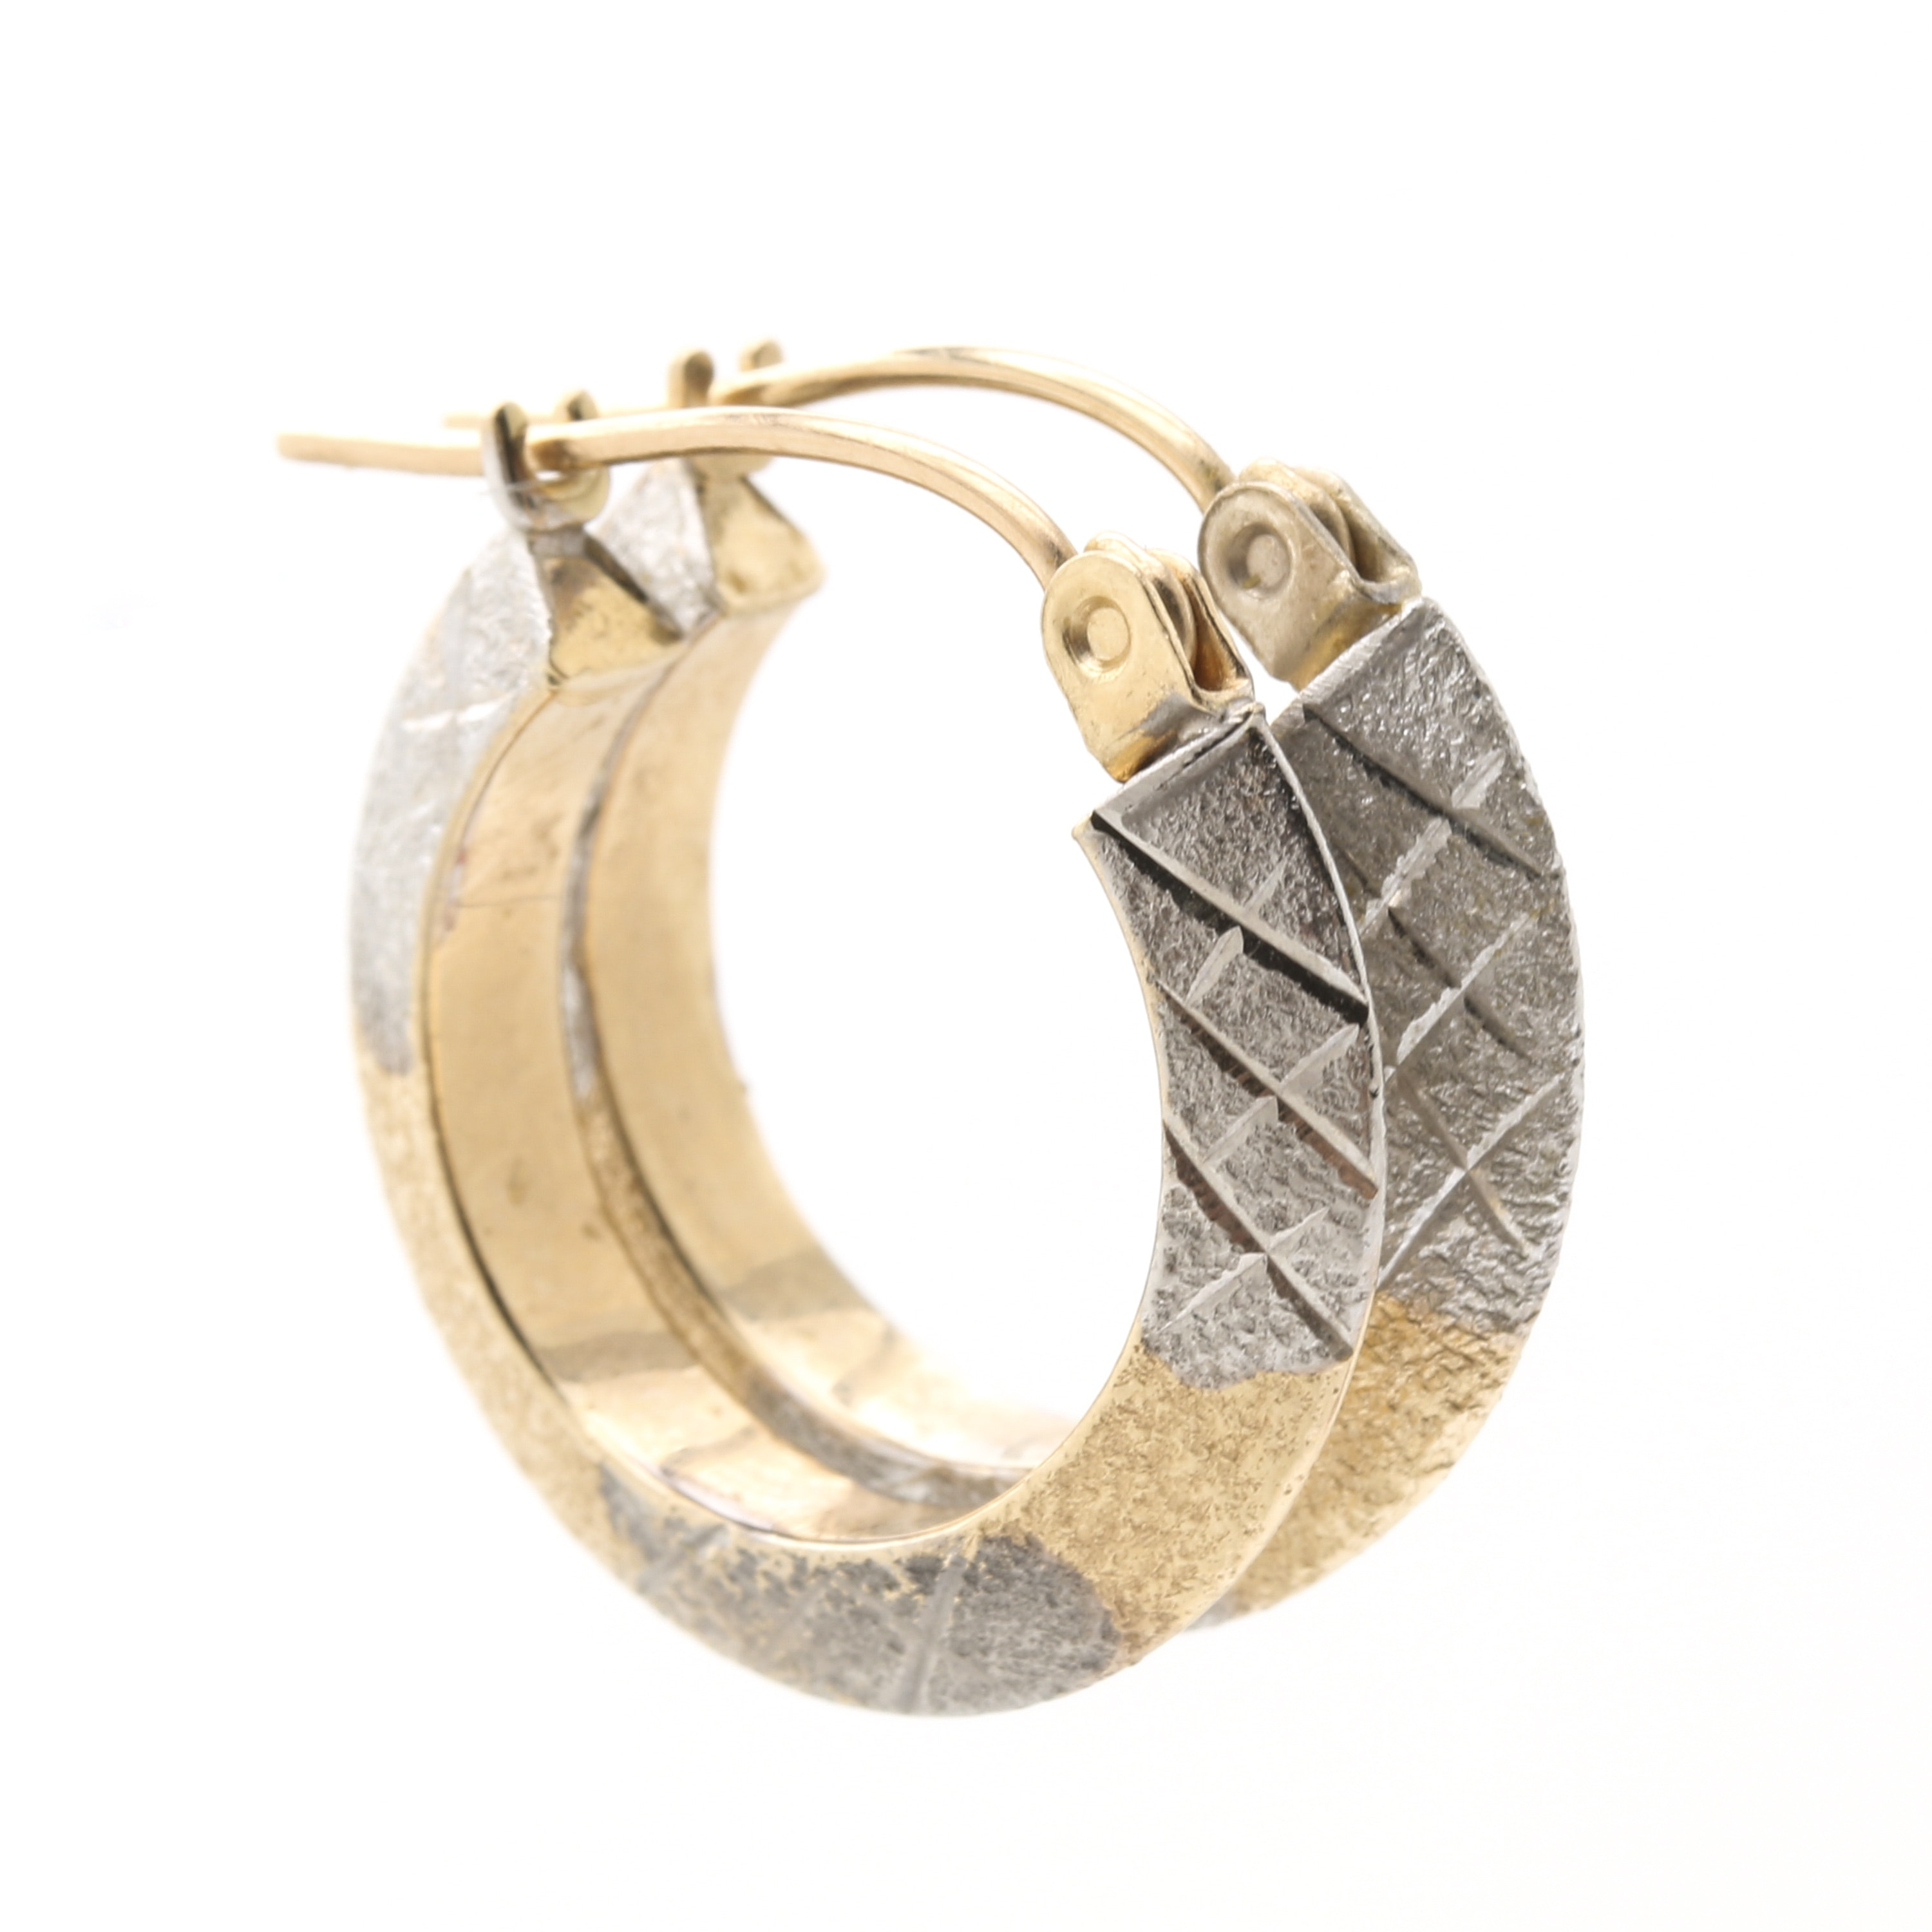 14K White and Yellow Gold Hoop Earrings